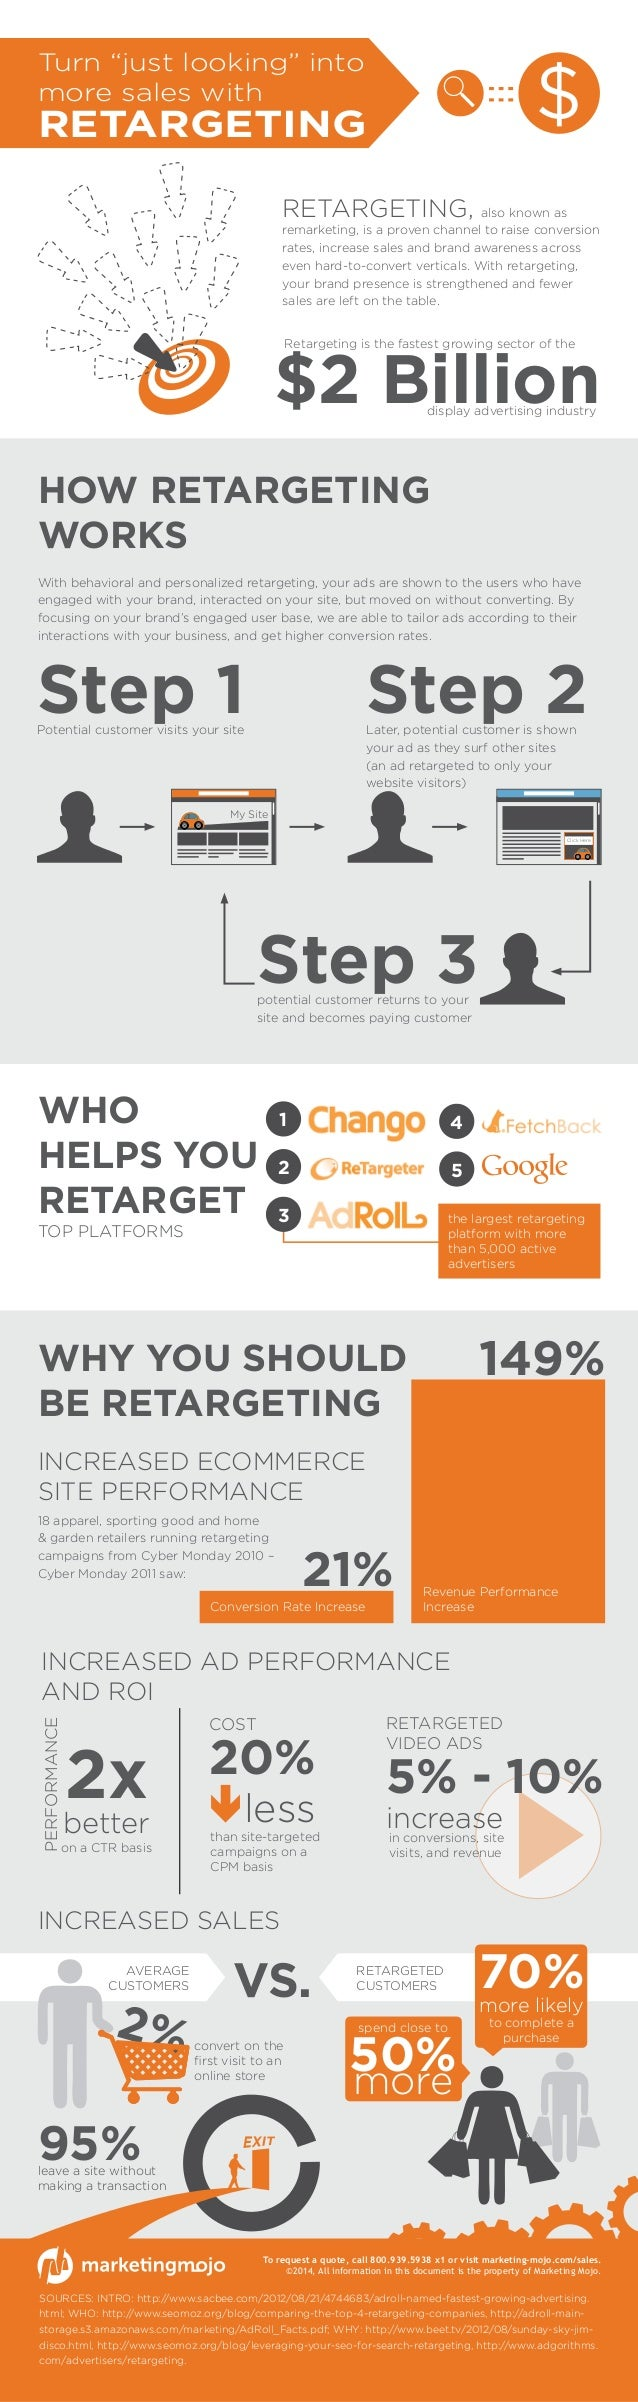 "INFOGRAPHIC: Turn ""Just Looking"" into More Sales with Retargeting"